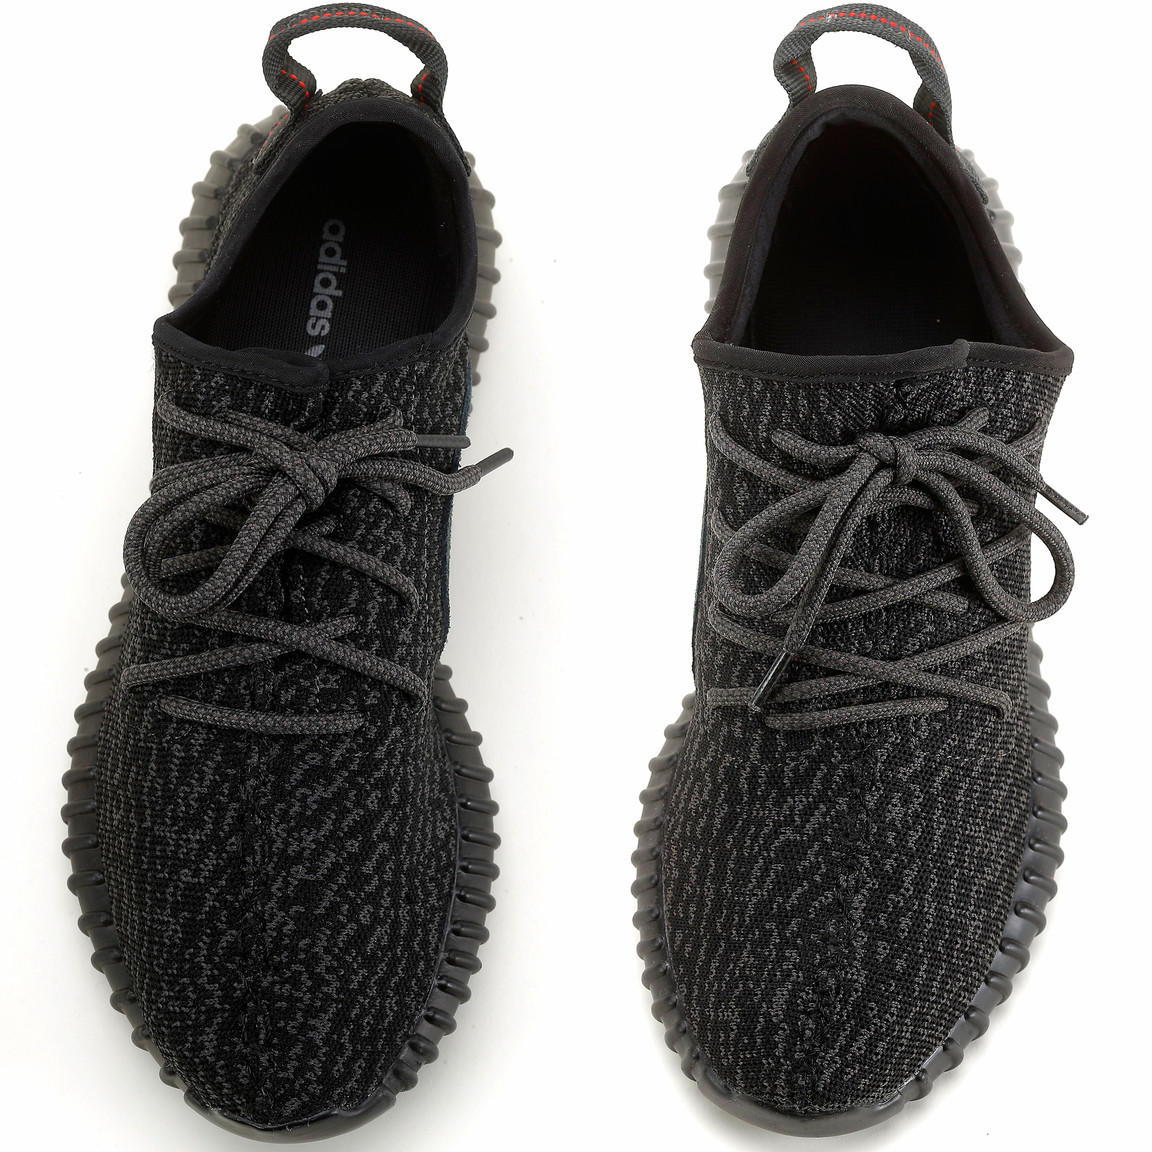 618708252e8a Counterfeit Yeezys and the booming sneaker black market - Los ...